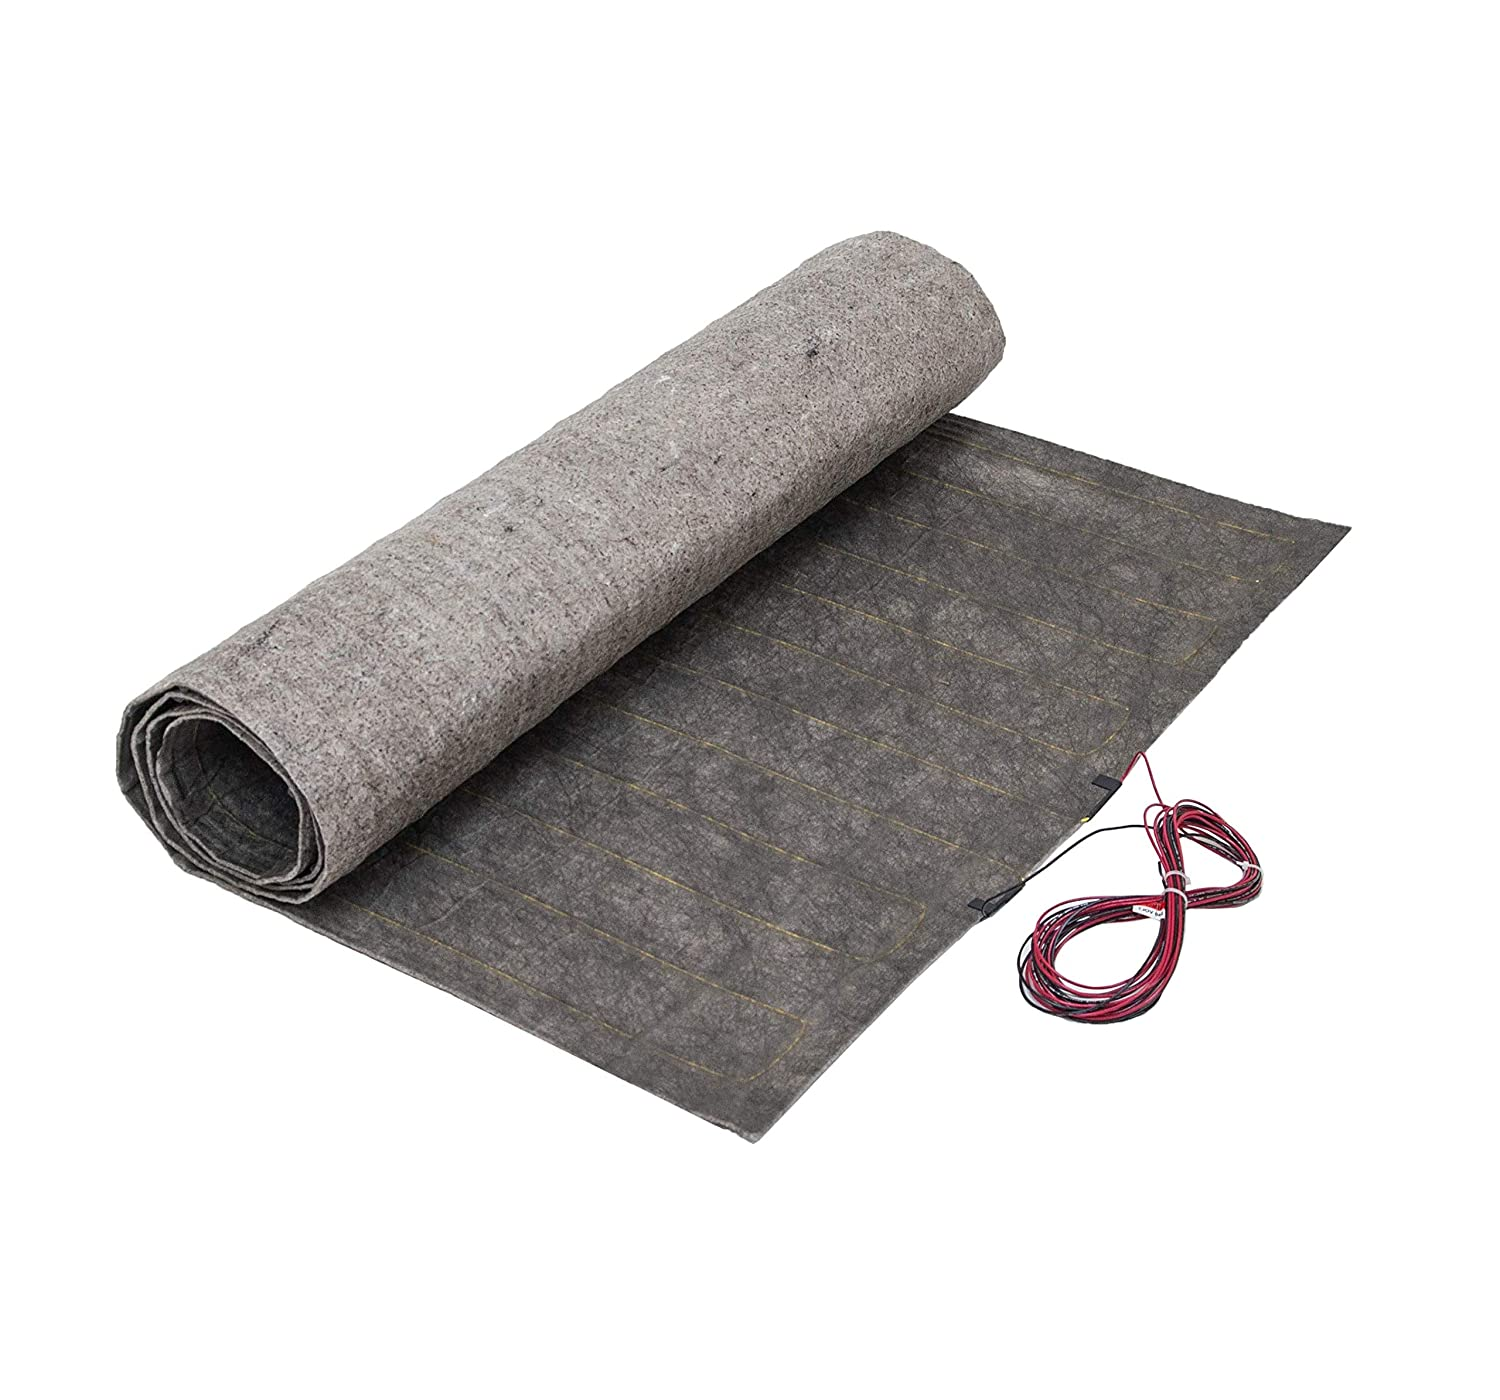 36 Sqft Radiant In-Floor Heating Mat System for Laminate and Wood Floor Heat, 240V, 3 ft x 12 ft